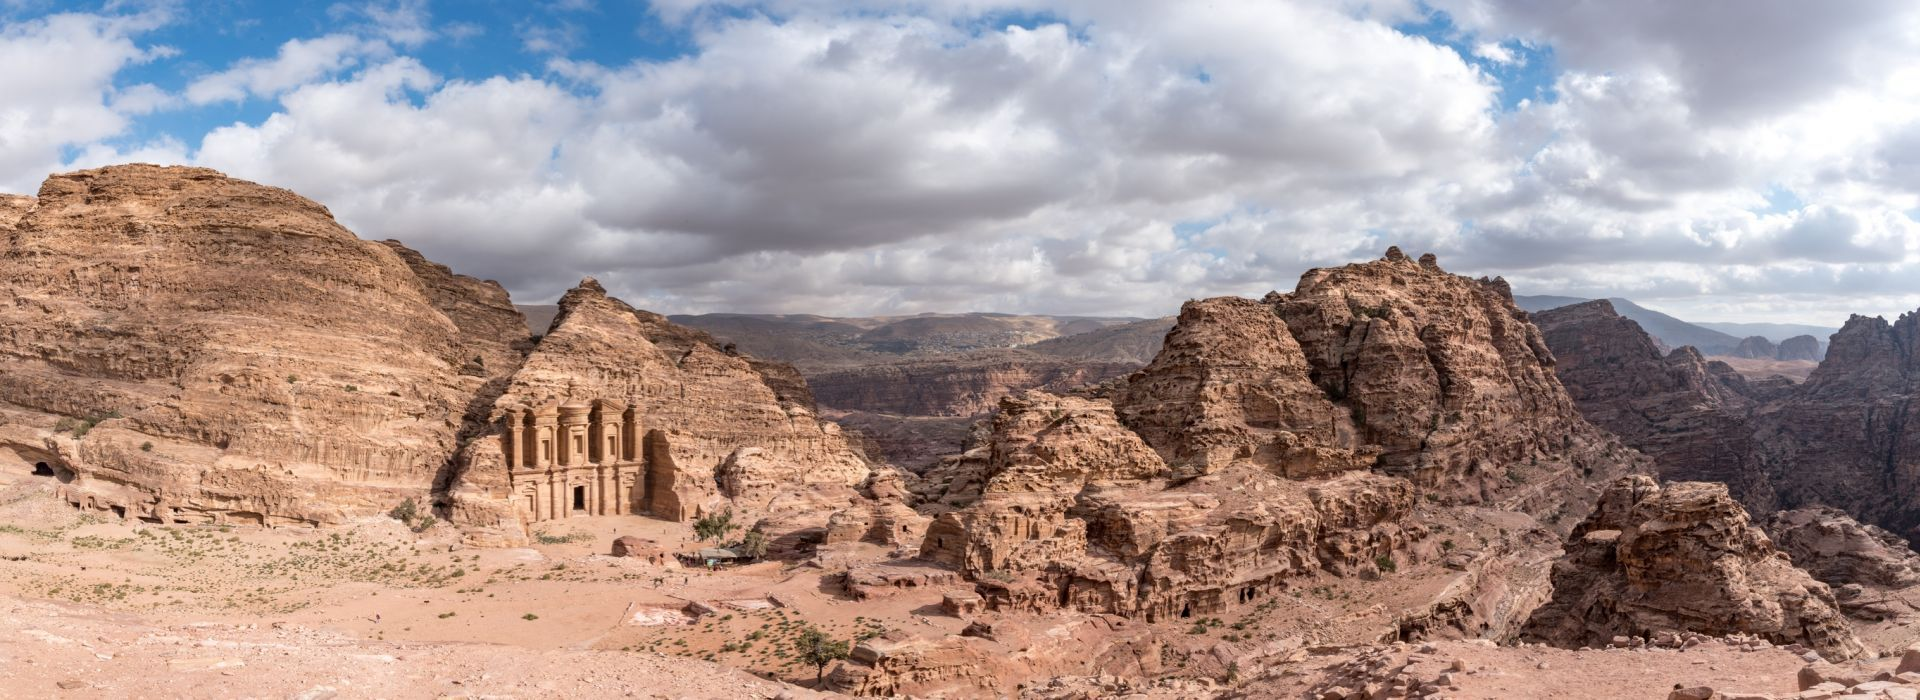 Walking tours in Jordan